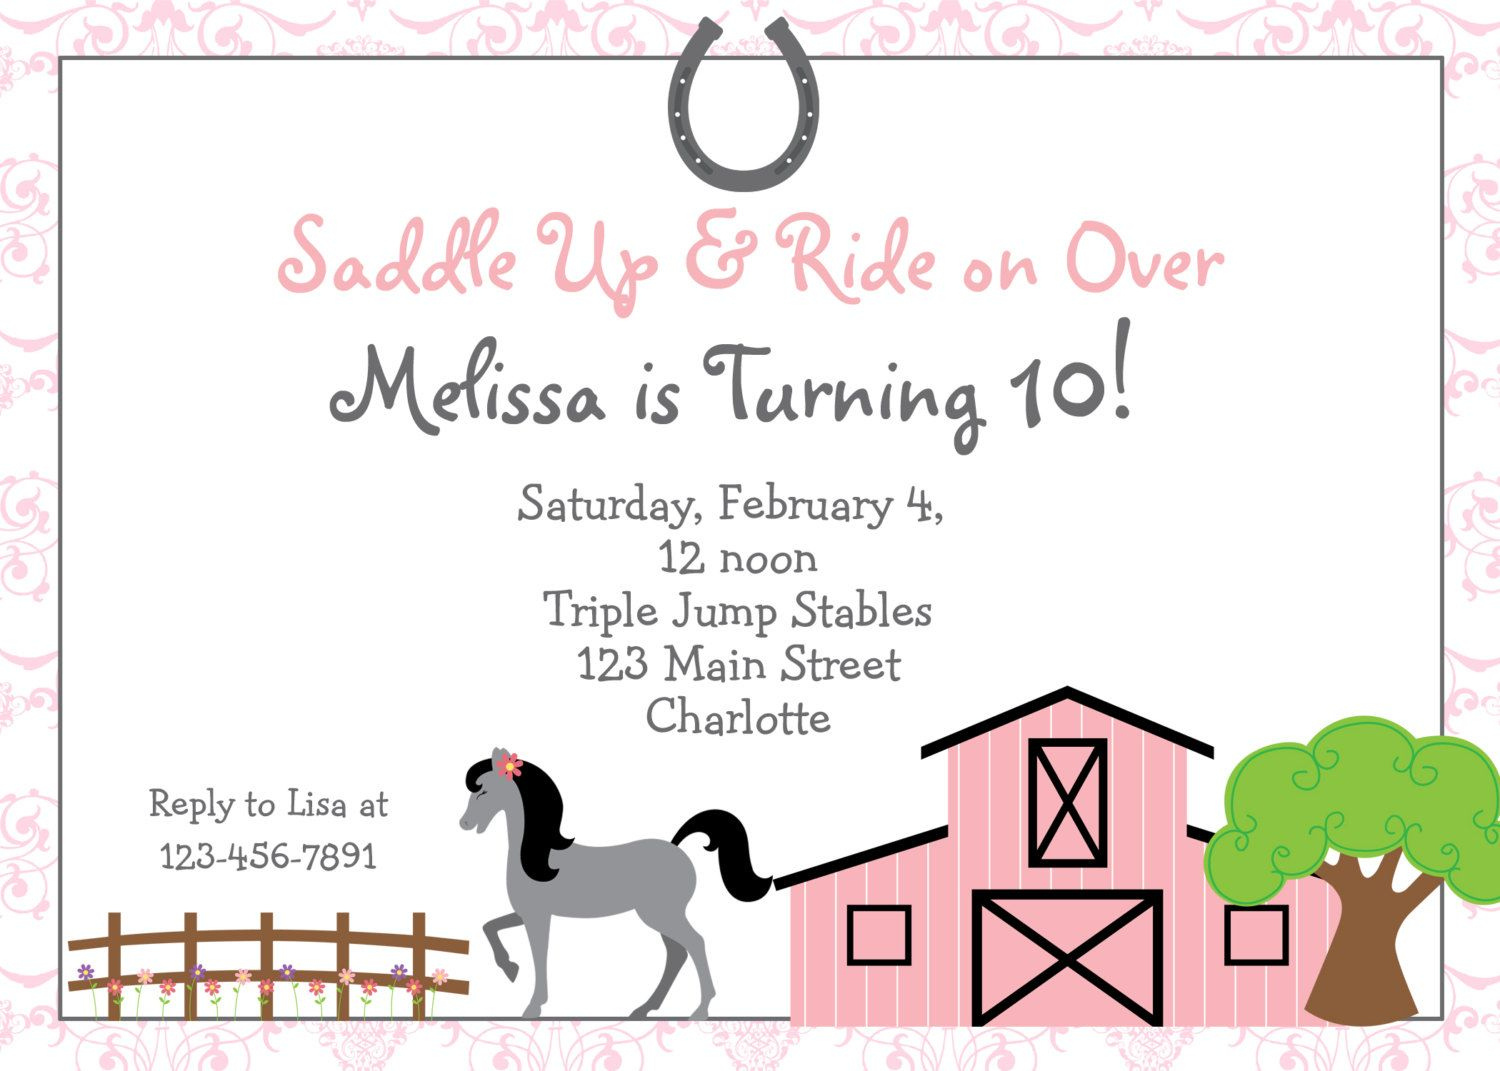 Free Printable Horse Riding Party Invitations | Birthday Invitation - Free Printable Horse Themed Birthday Party Invitations